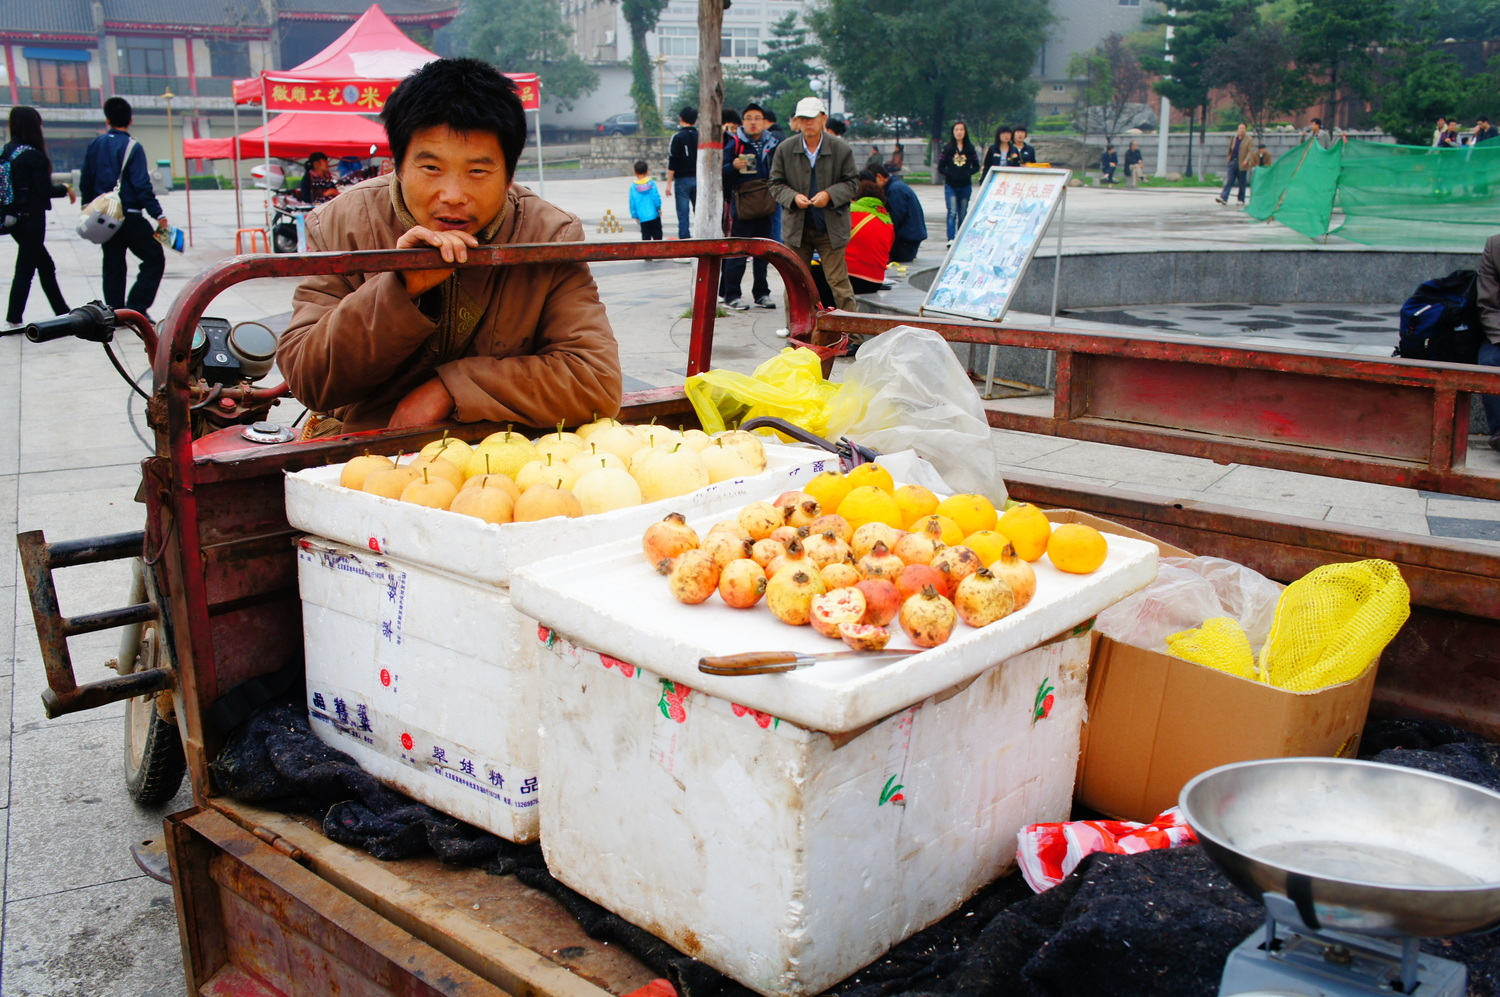 You even have to haggle for fruits and veggies in the street